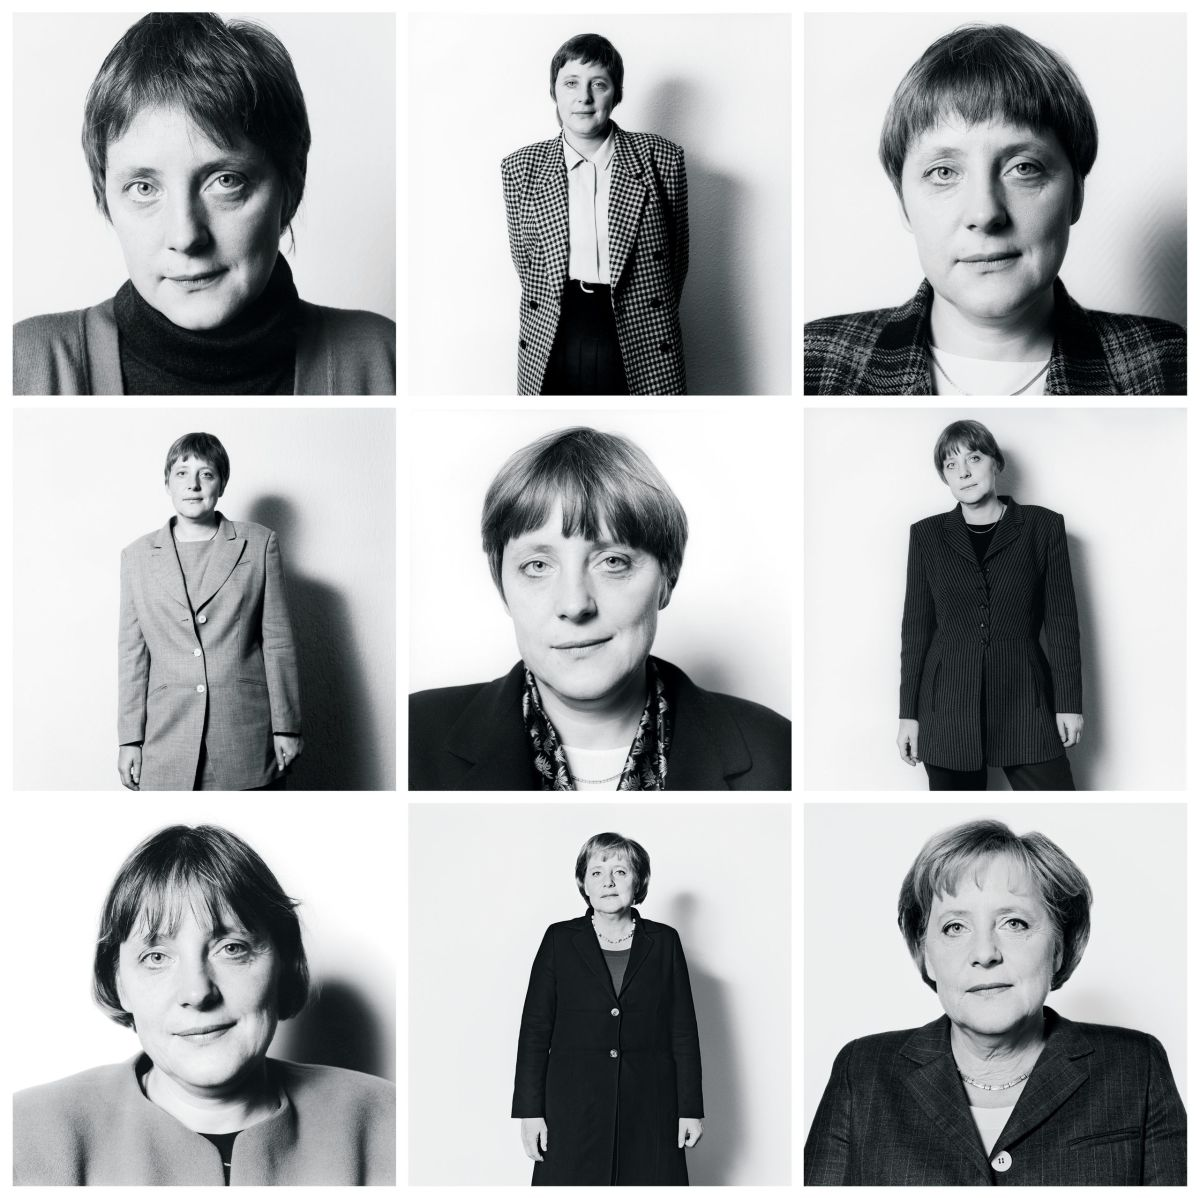 Angela Merkel's rise from brilliant student to political powerhouse: https://t.co/Of8bWM9Qws #TNYarchive